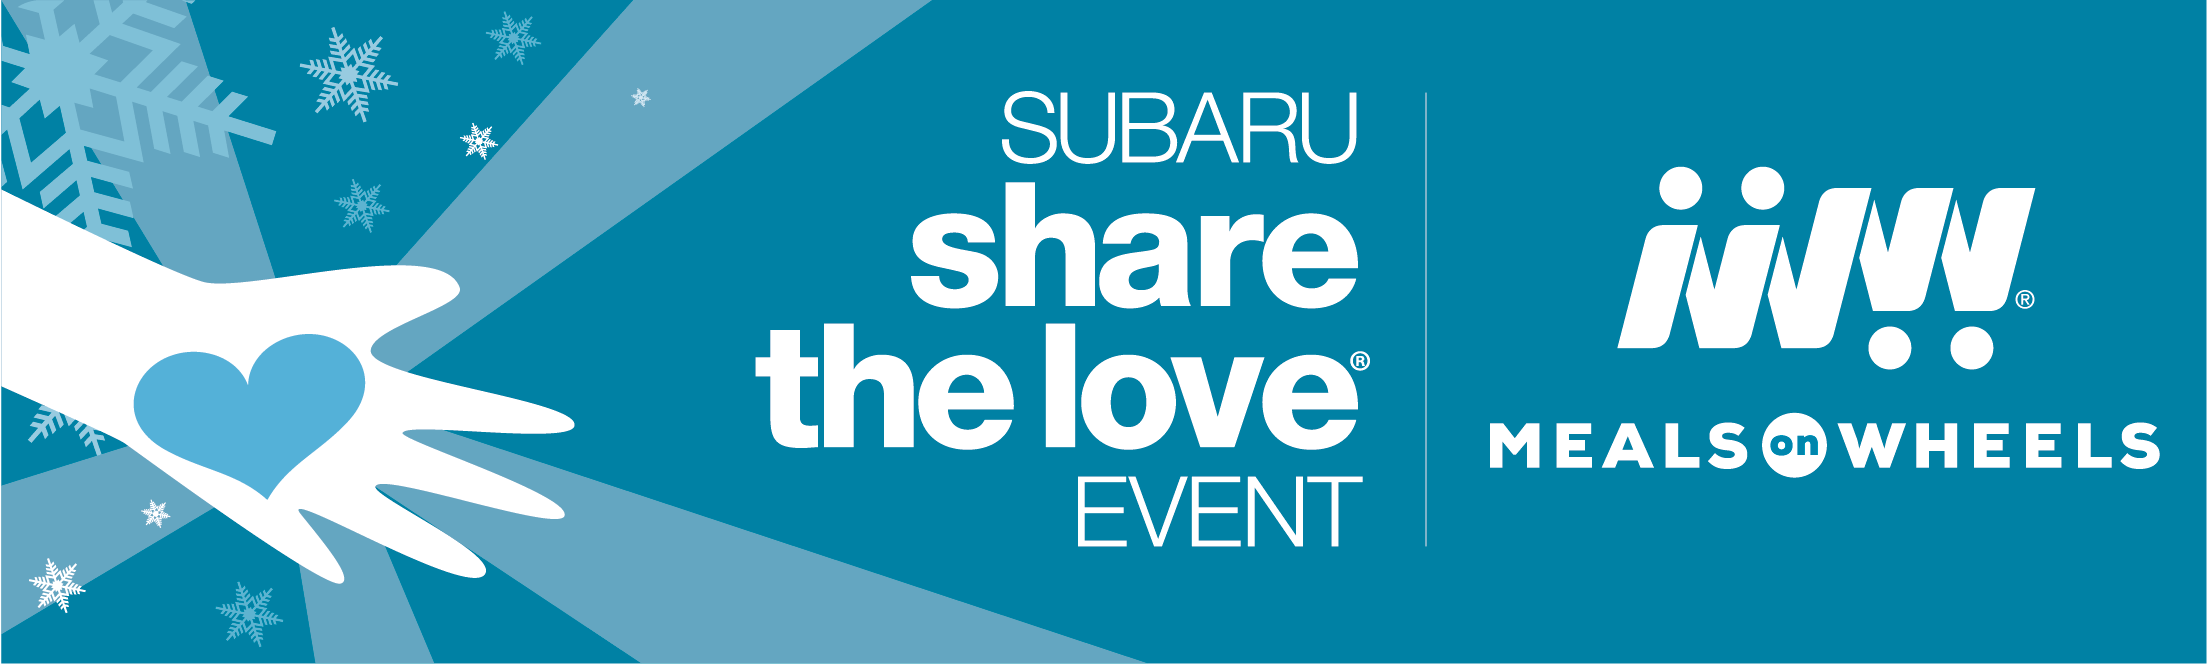 Subaru Share the Love Event Returns for 2020